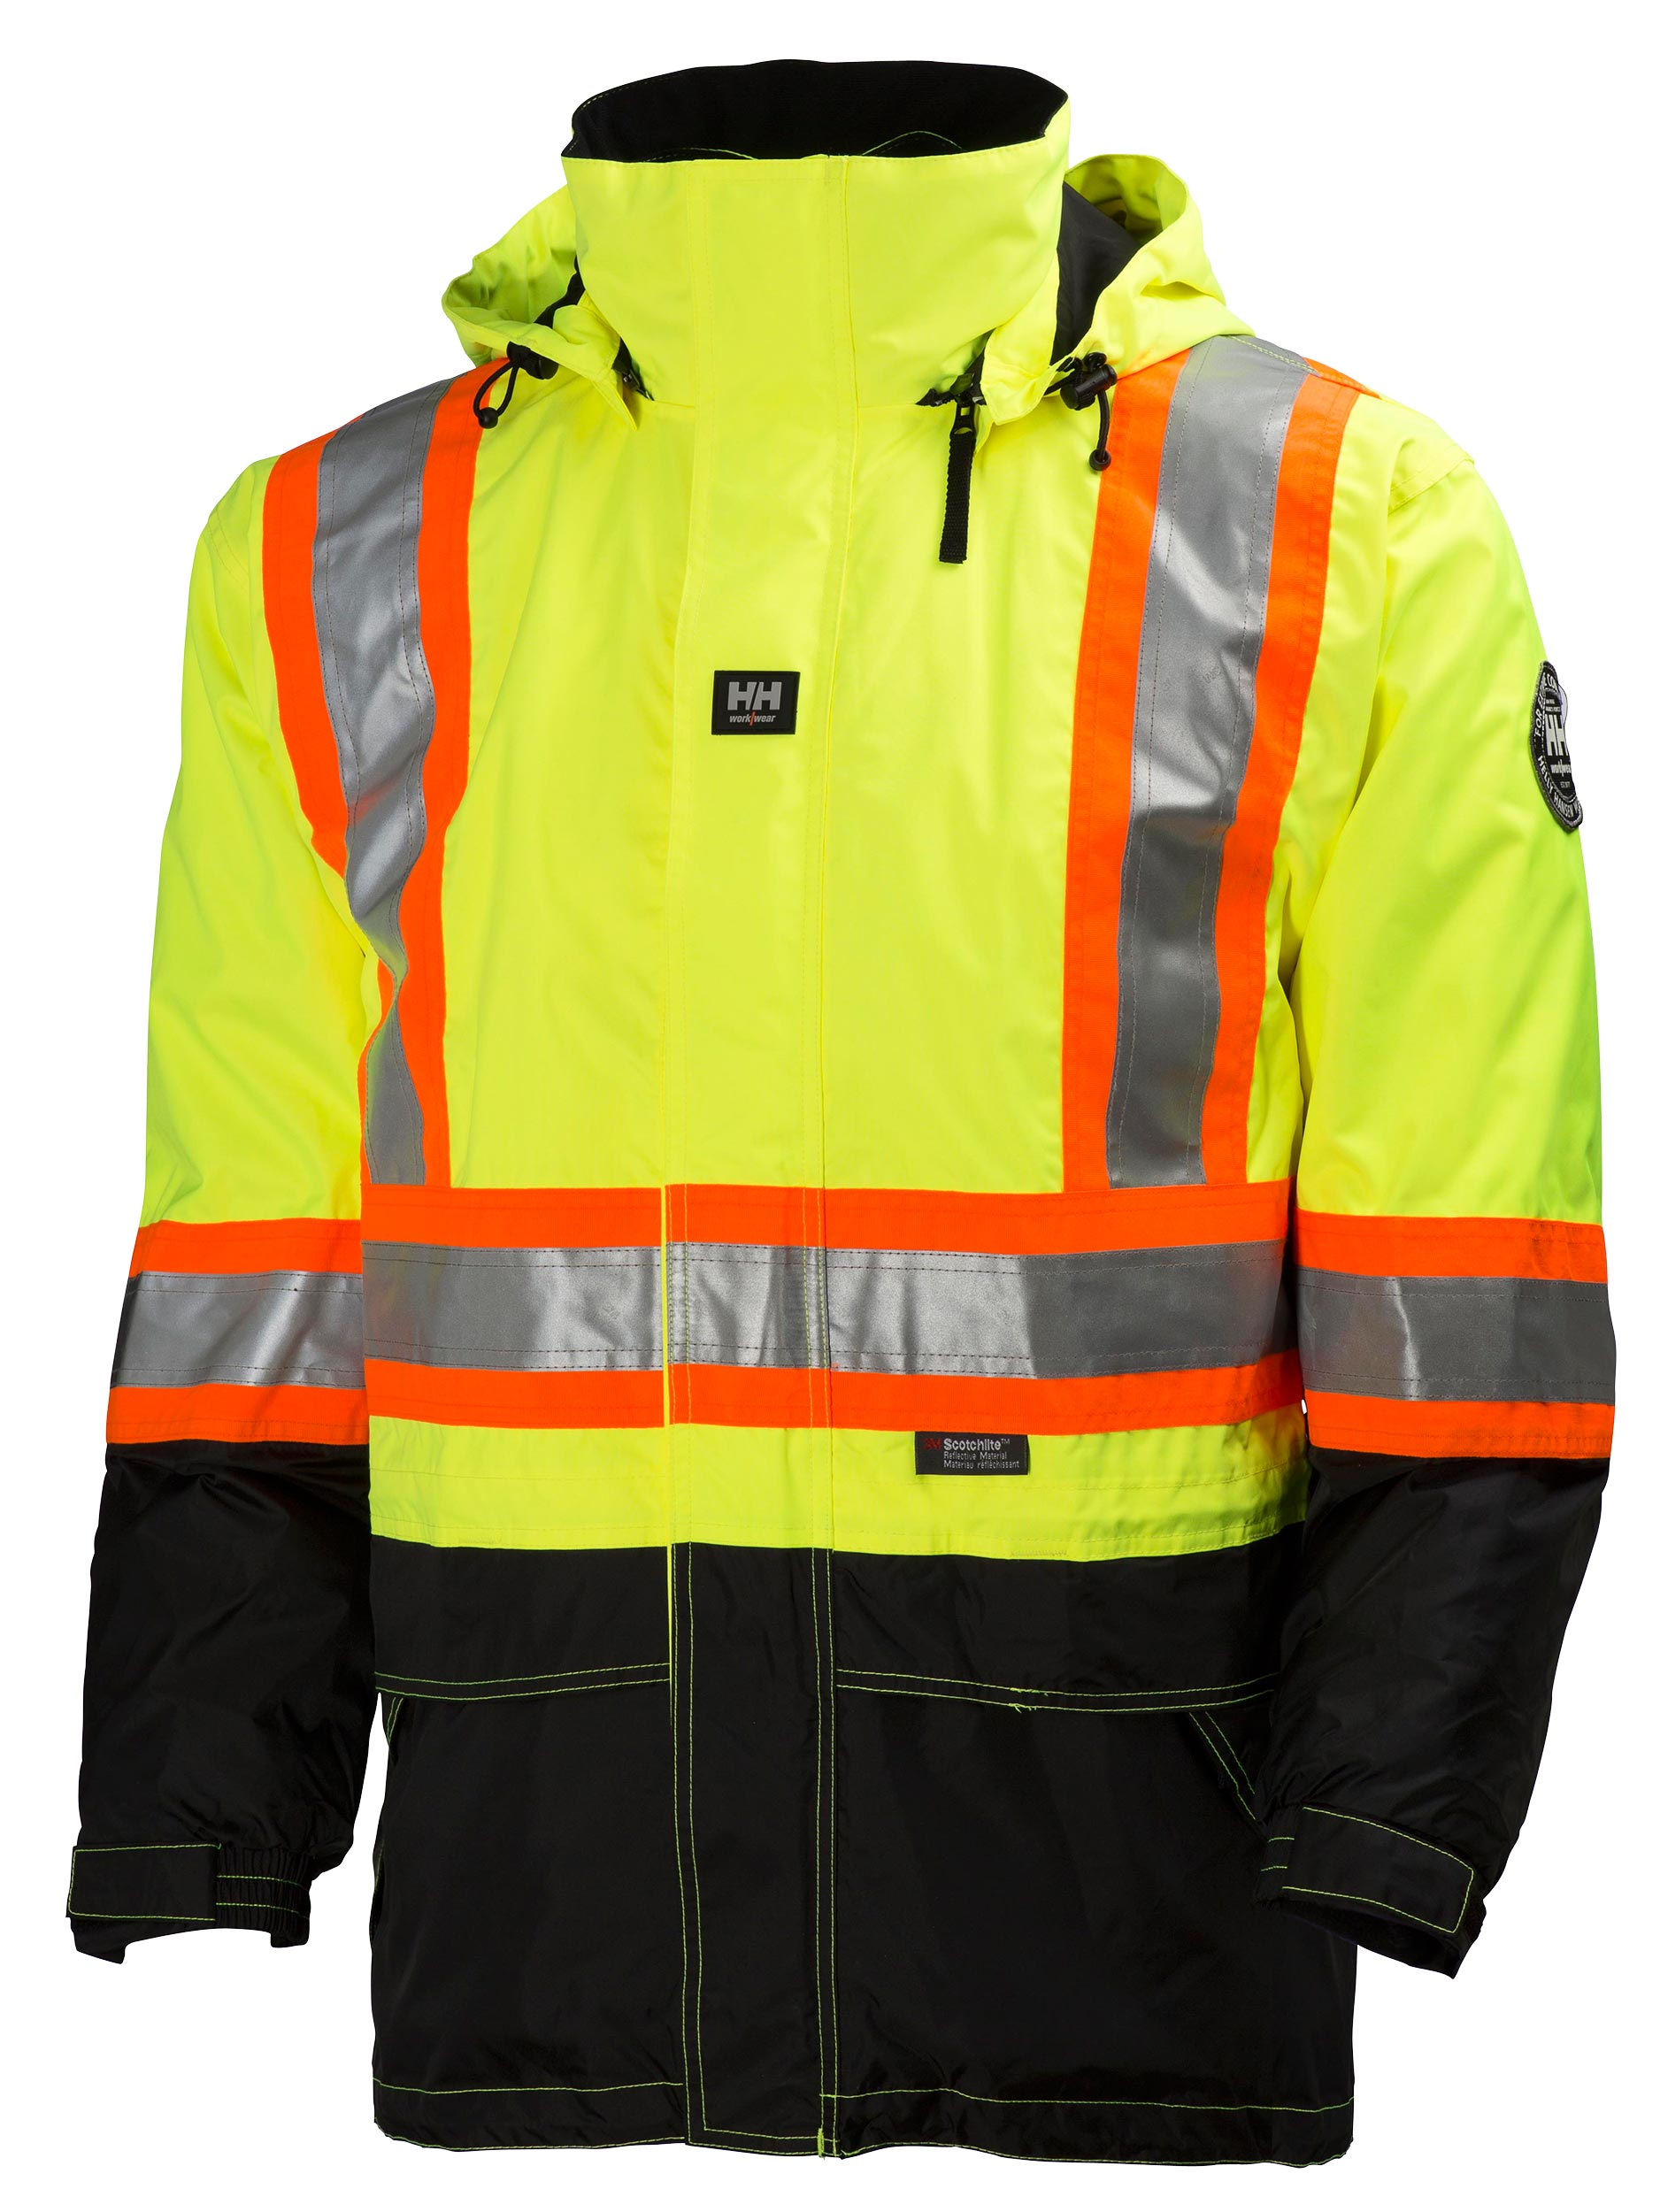 Jacket Potsdam 3-in-1 with Striping-Helly Hansen Canada Ltd.